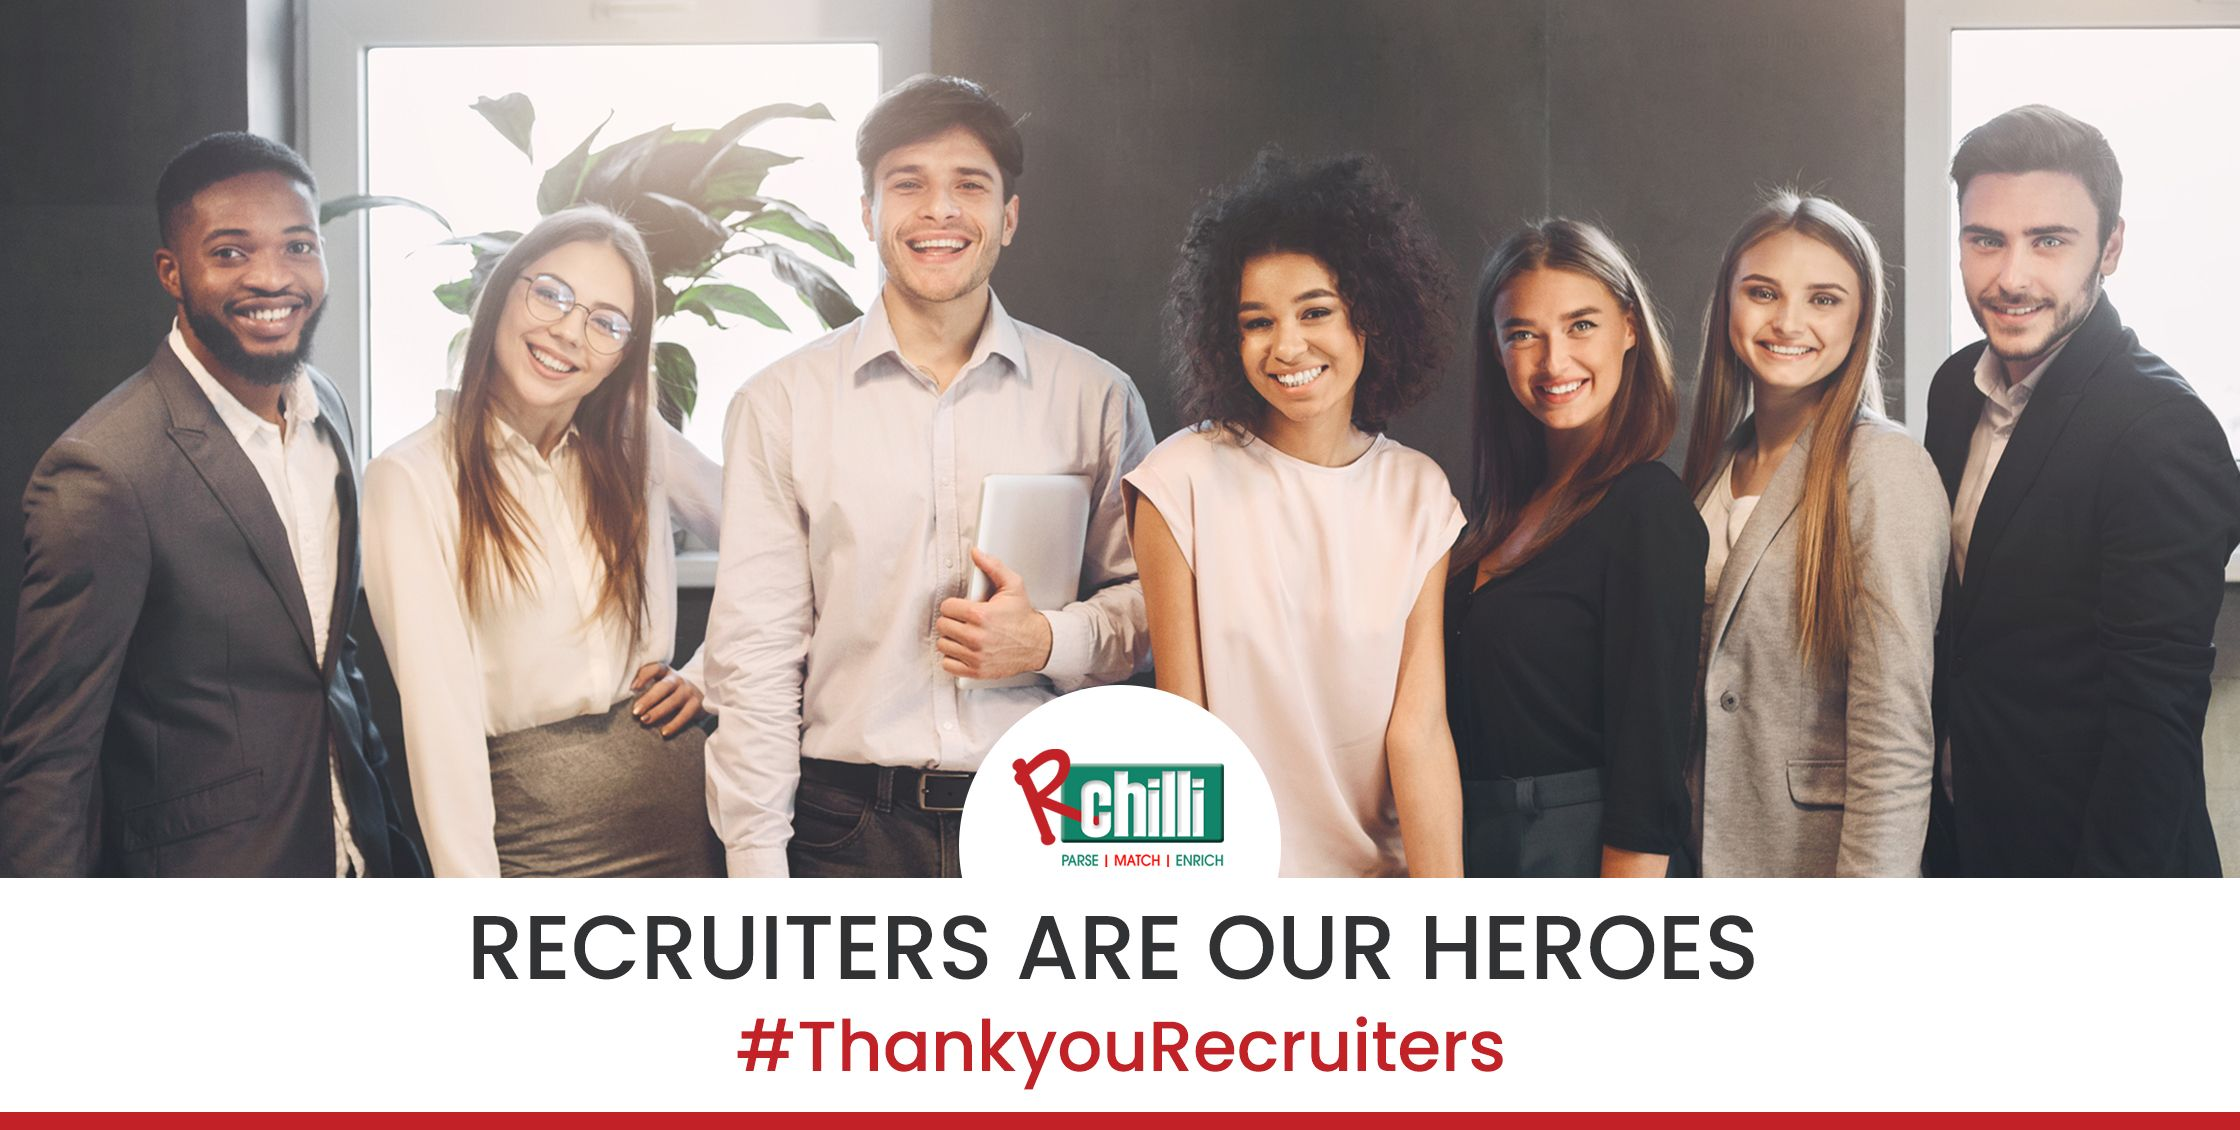 Happy International Recruiters Day